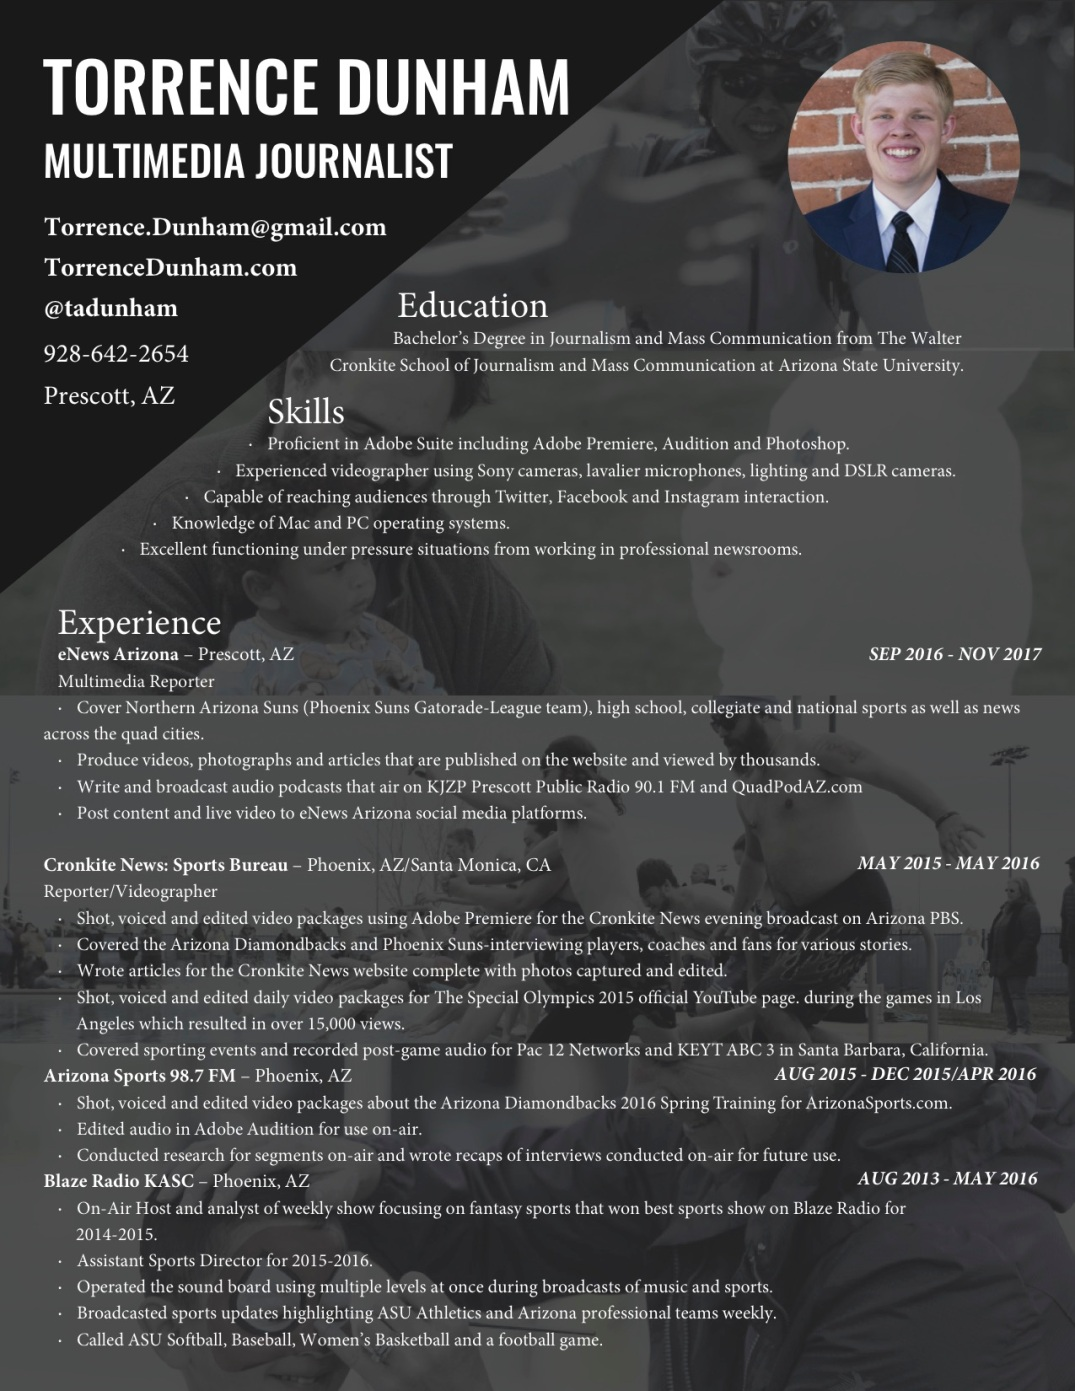 Torrence Dunham Resume